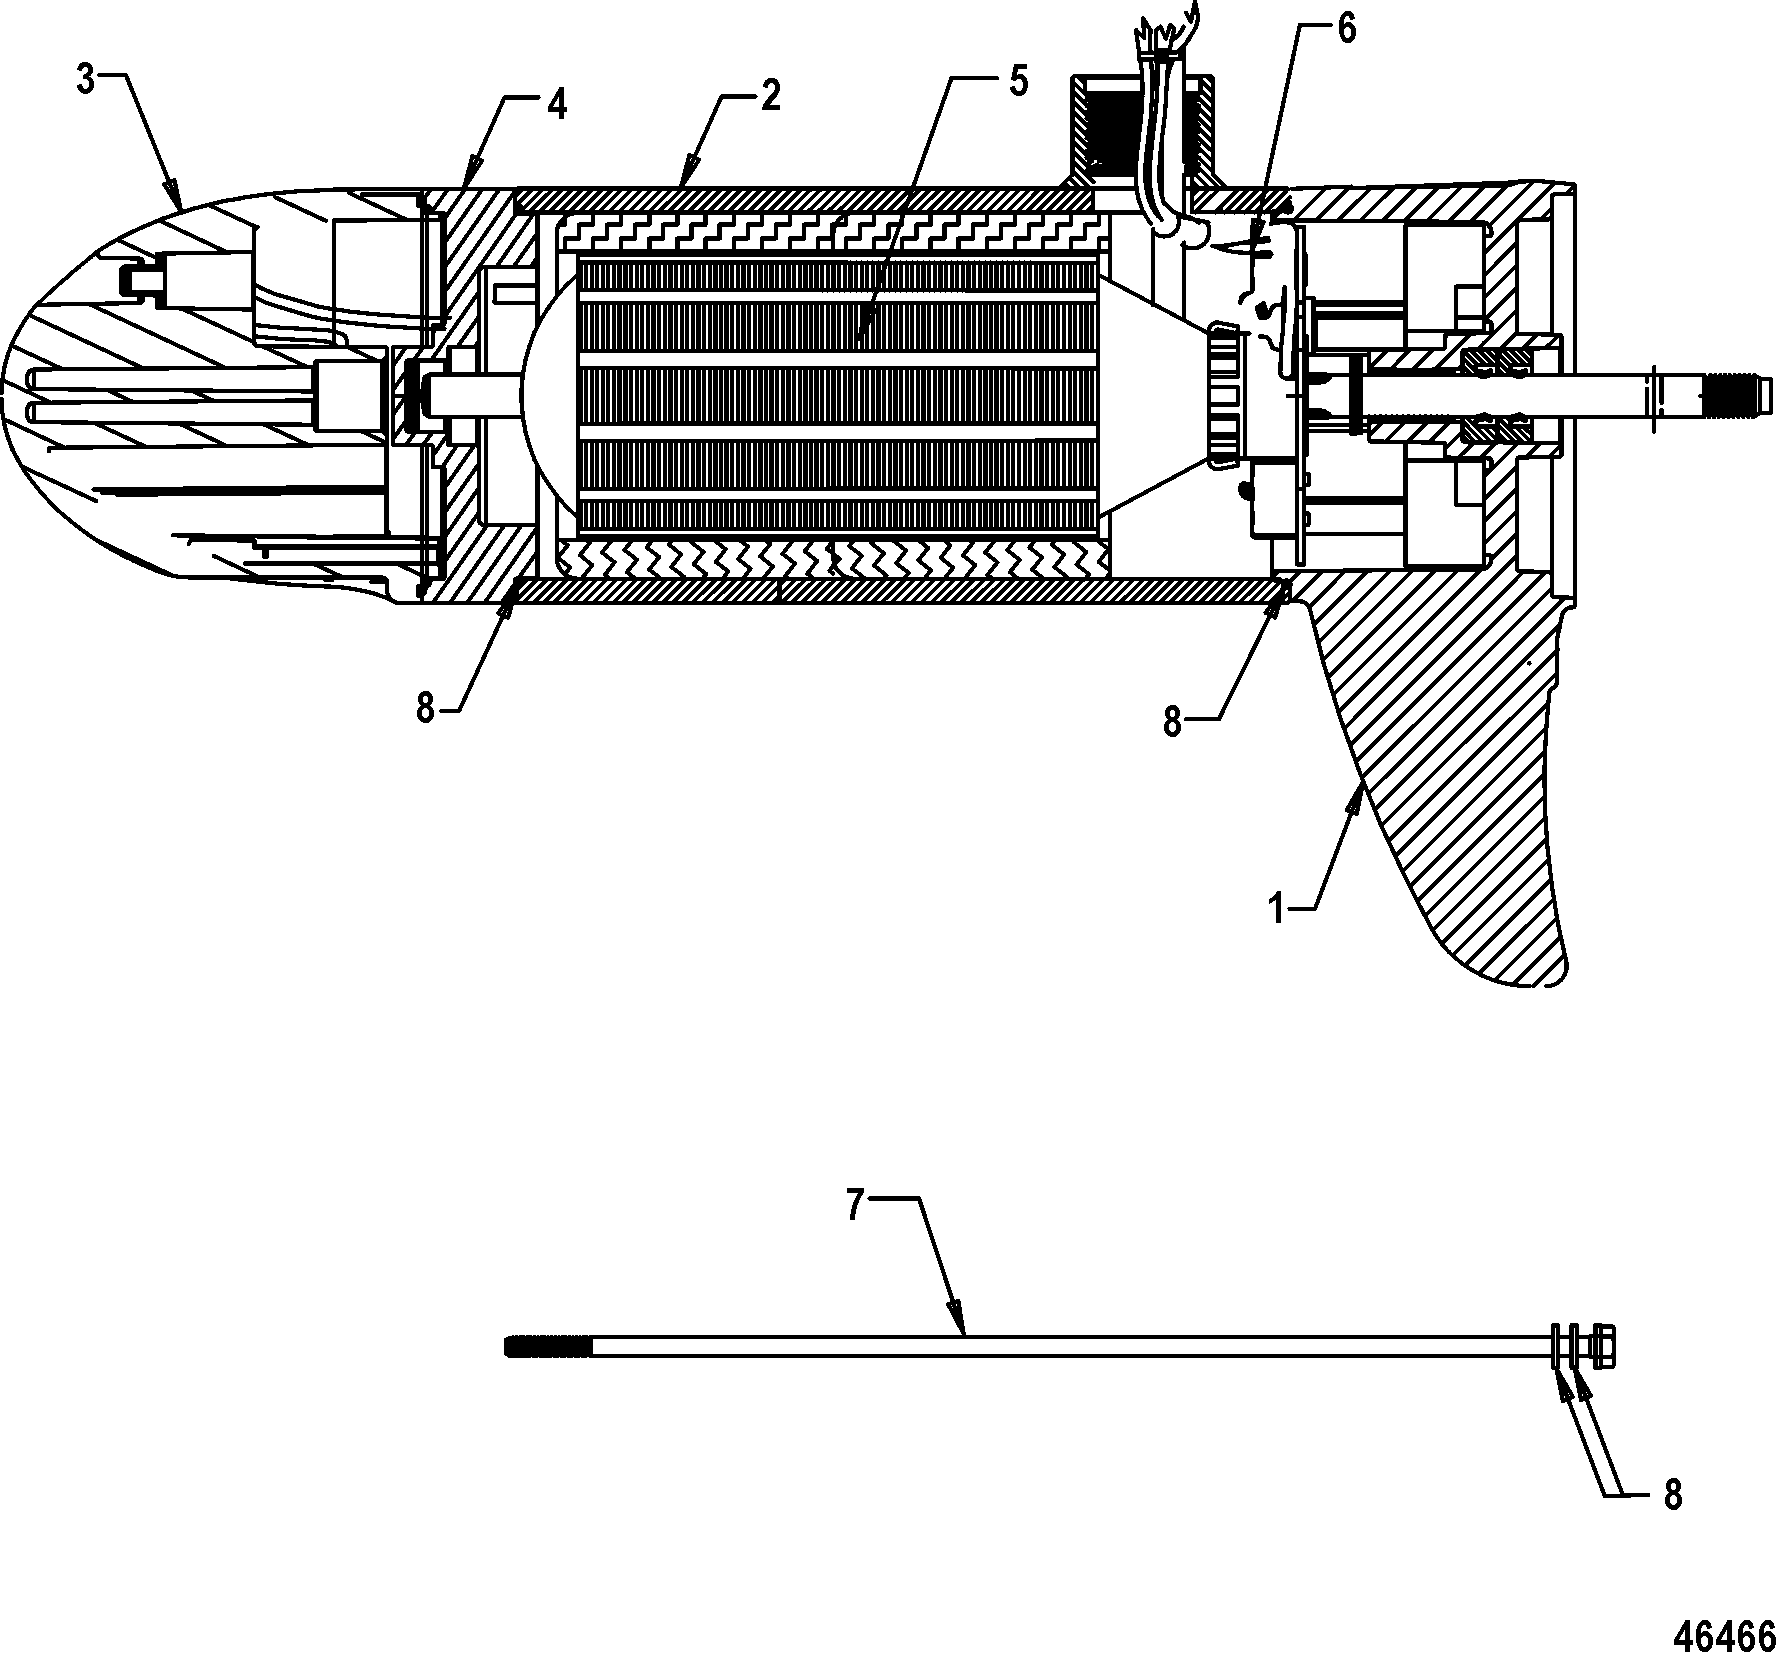 10 Hp Honda Outboard Parts Diagram